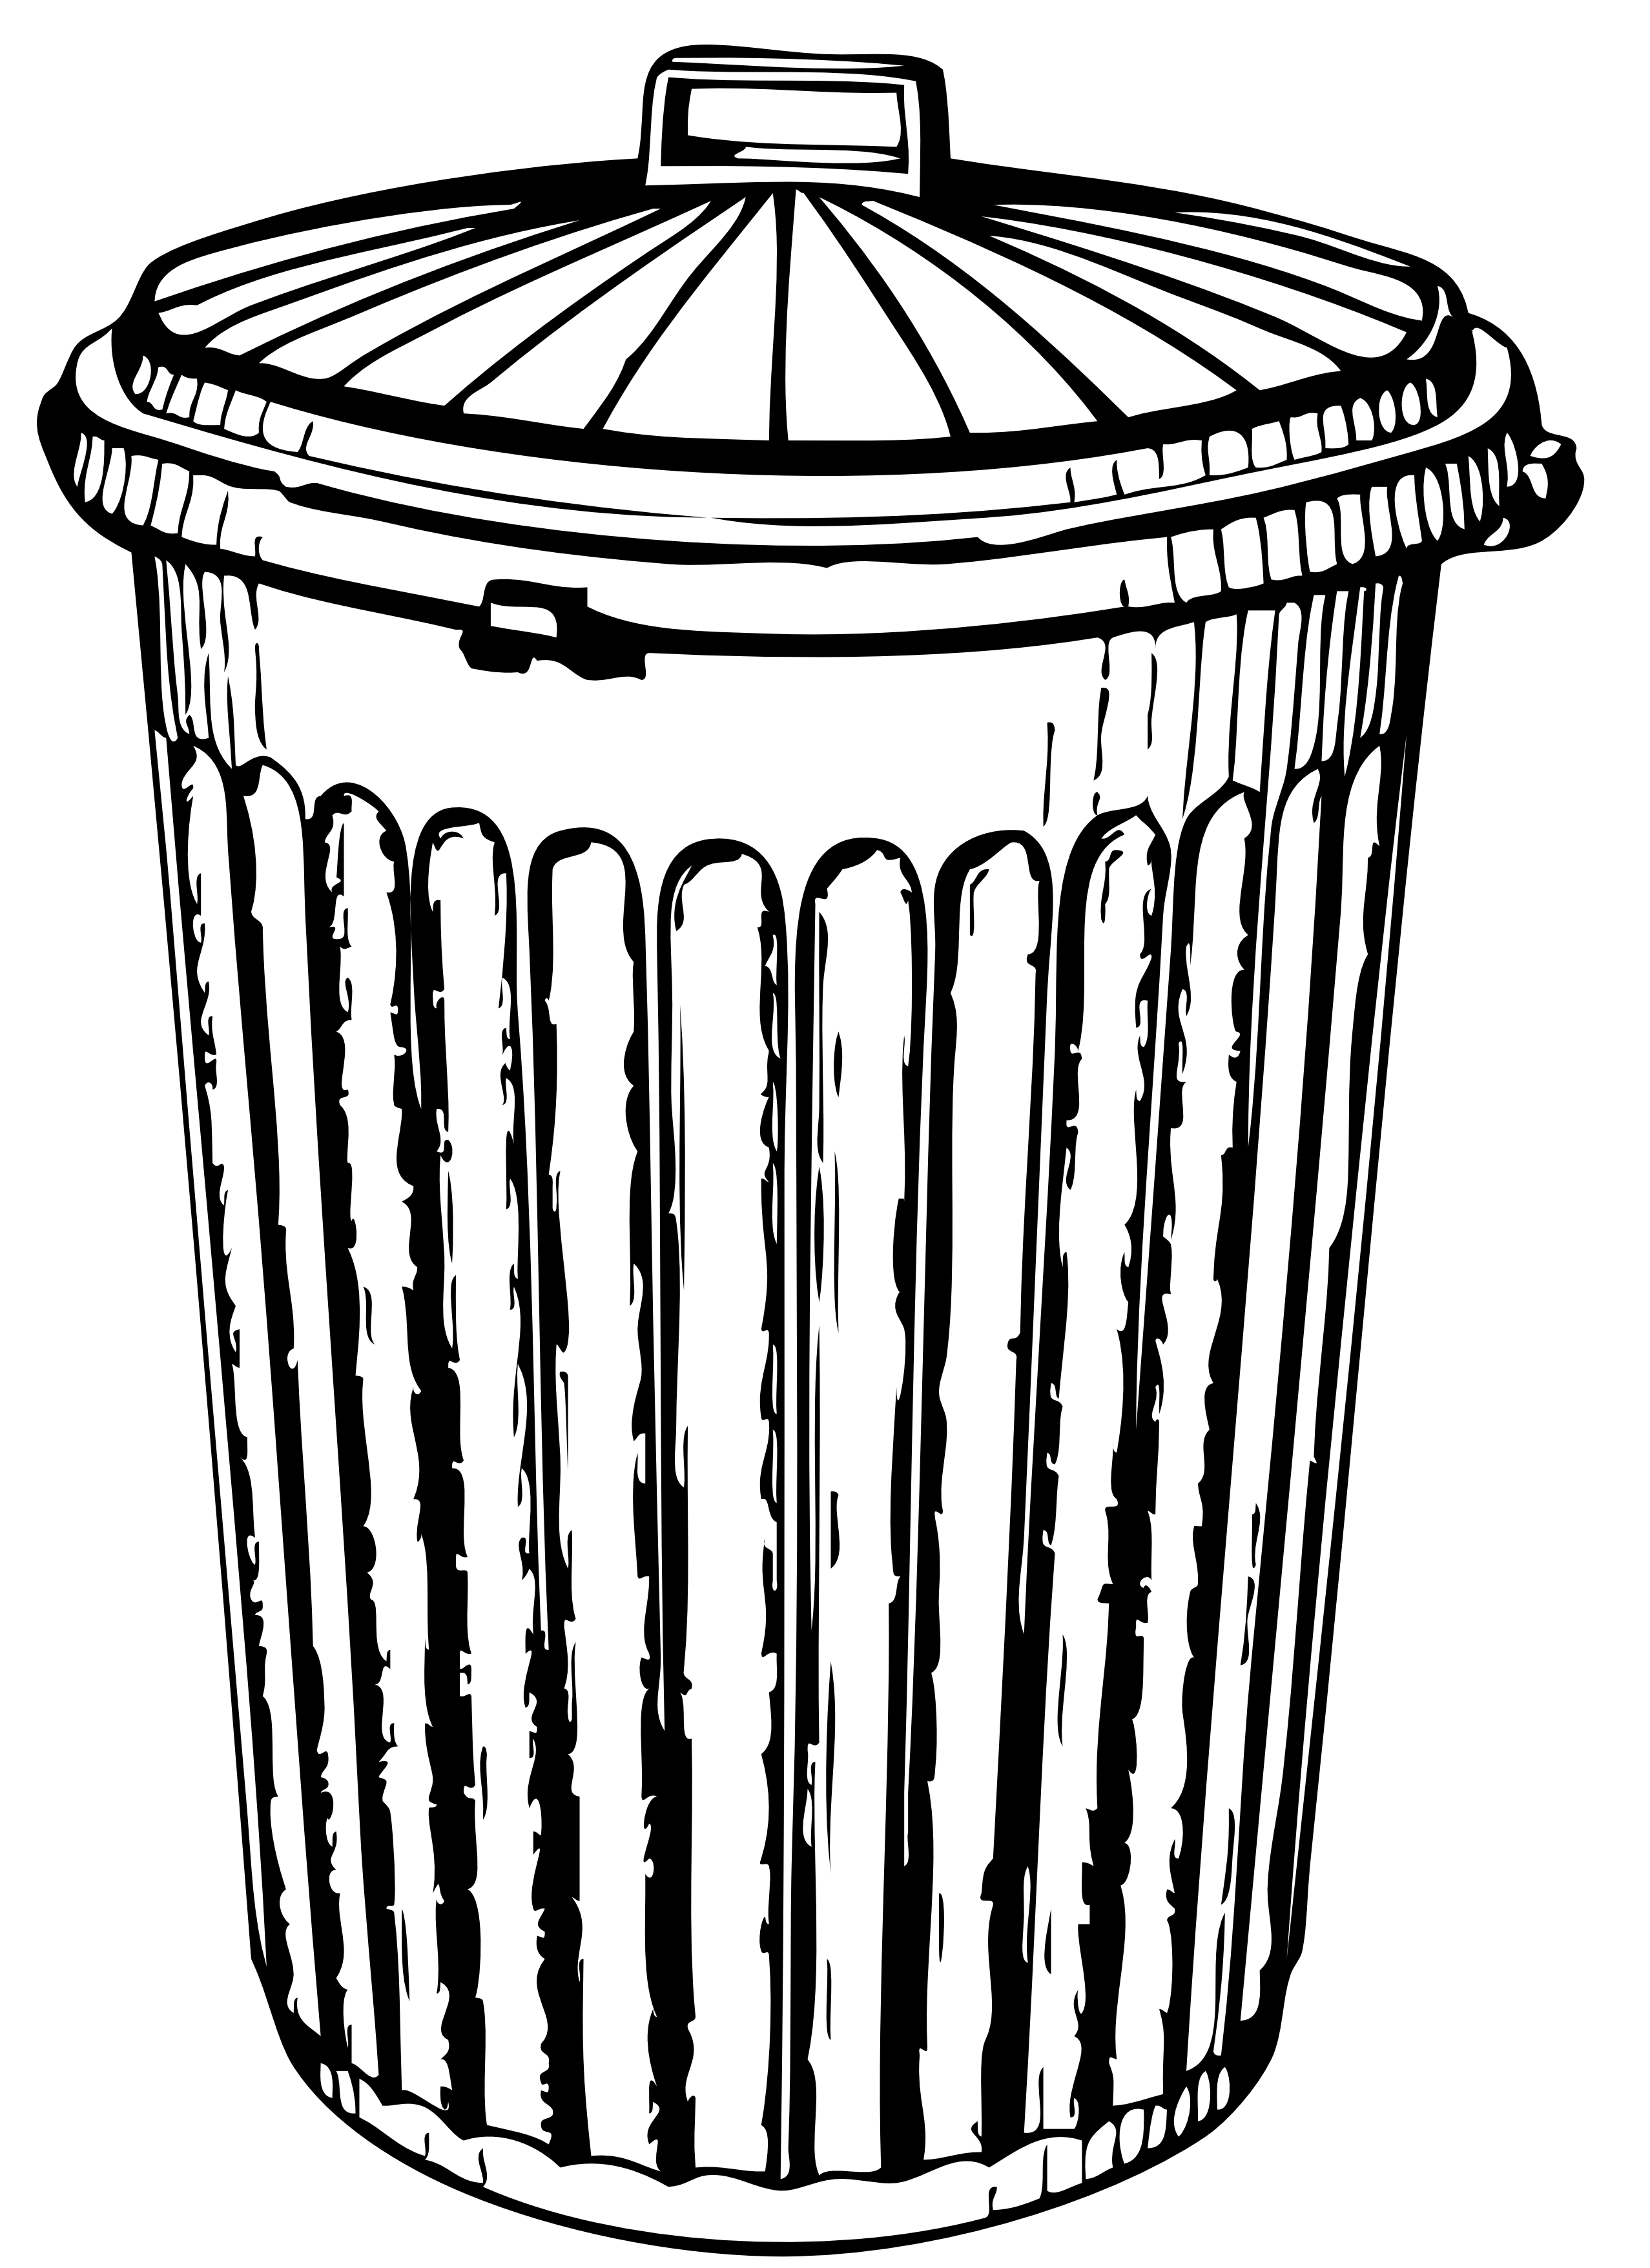 Free Pictures Of Trash, Download Free Clip Art, Free Clip